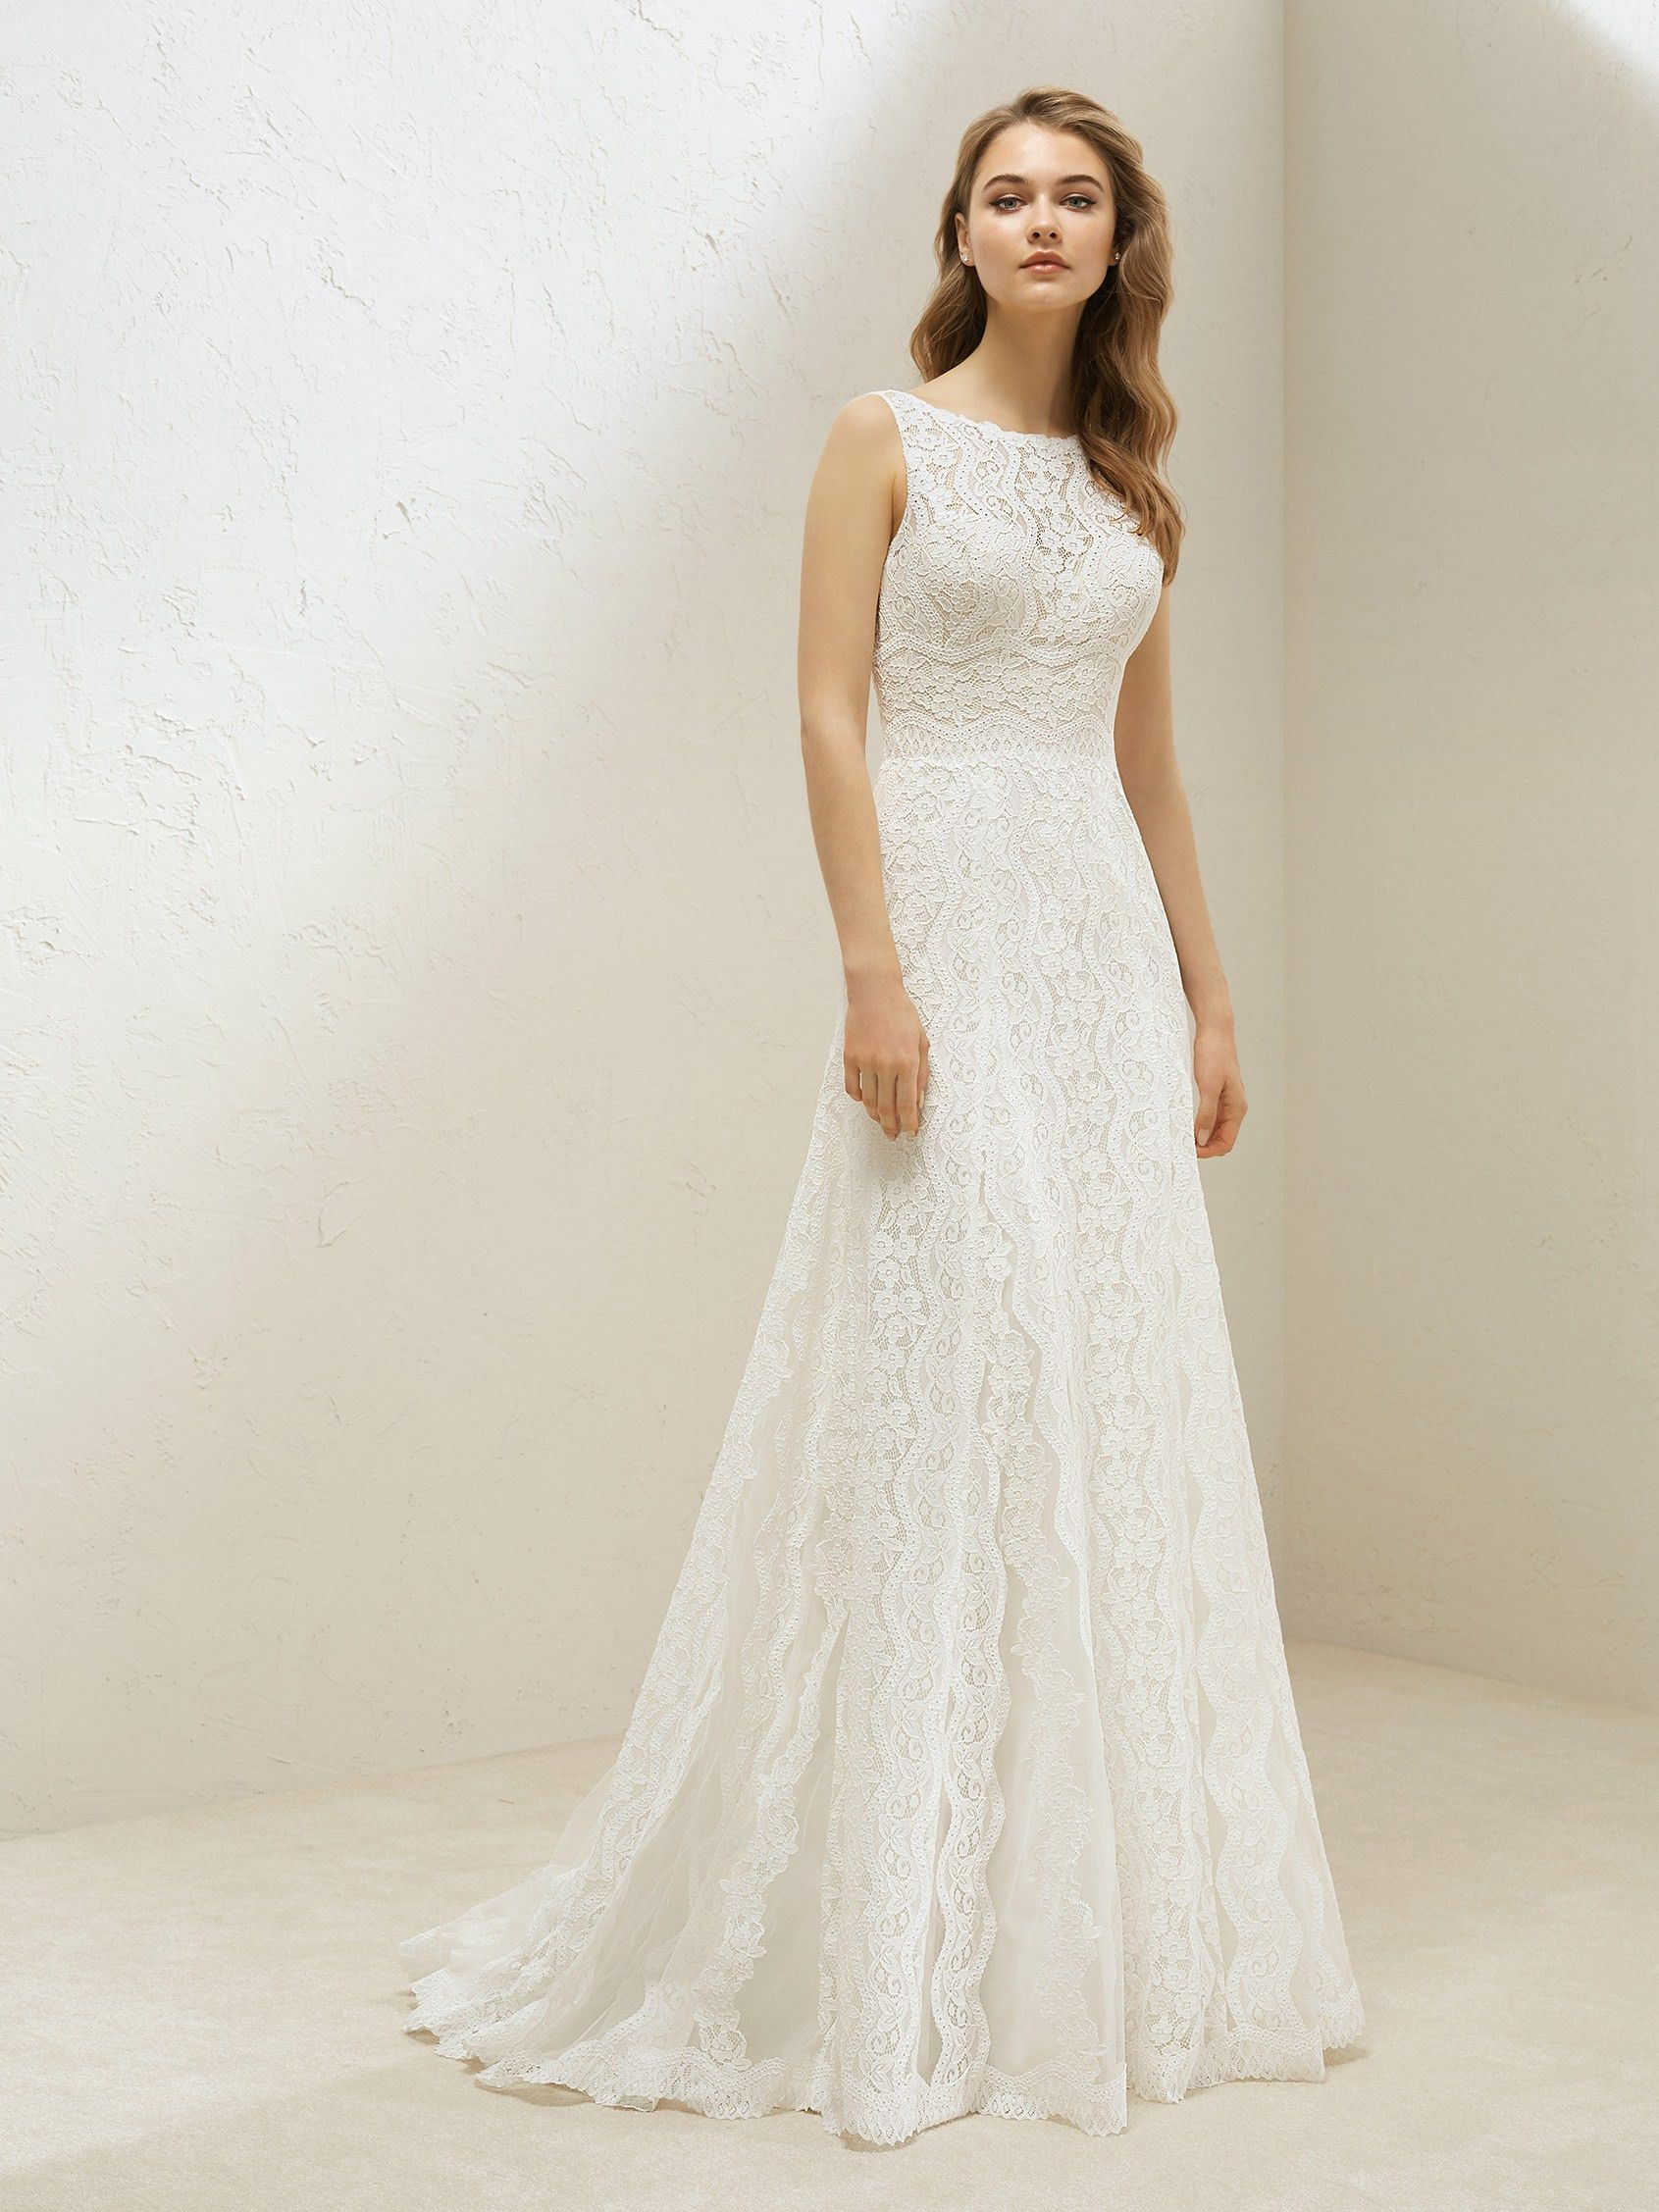 Lace Takes Center Stage In A Dress Set Apart By Romanticism And